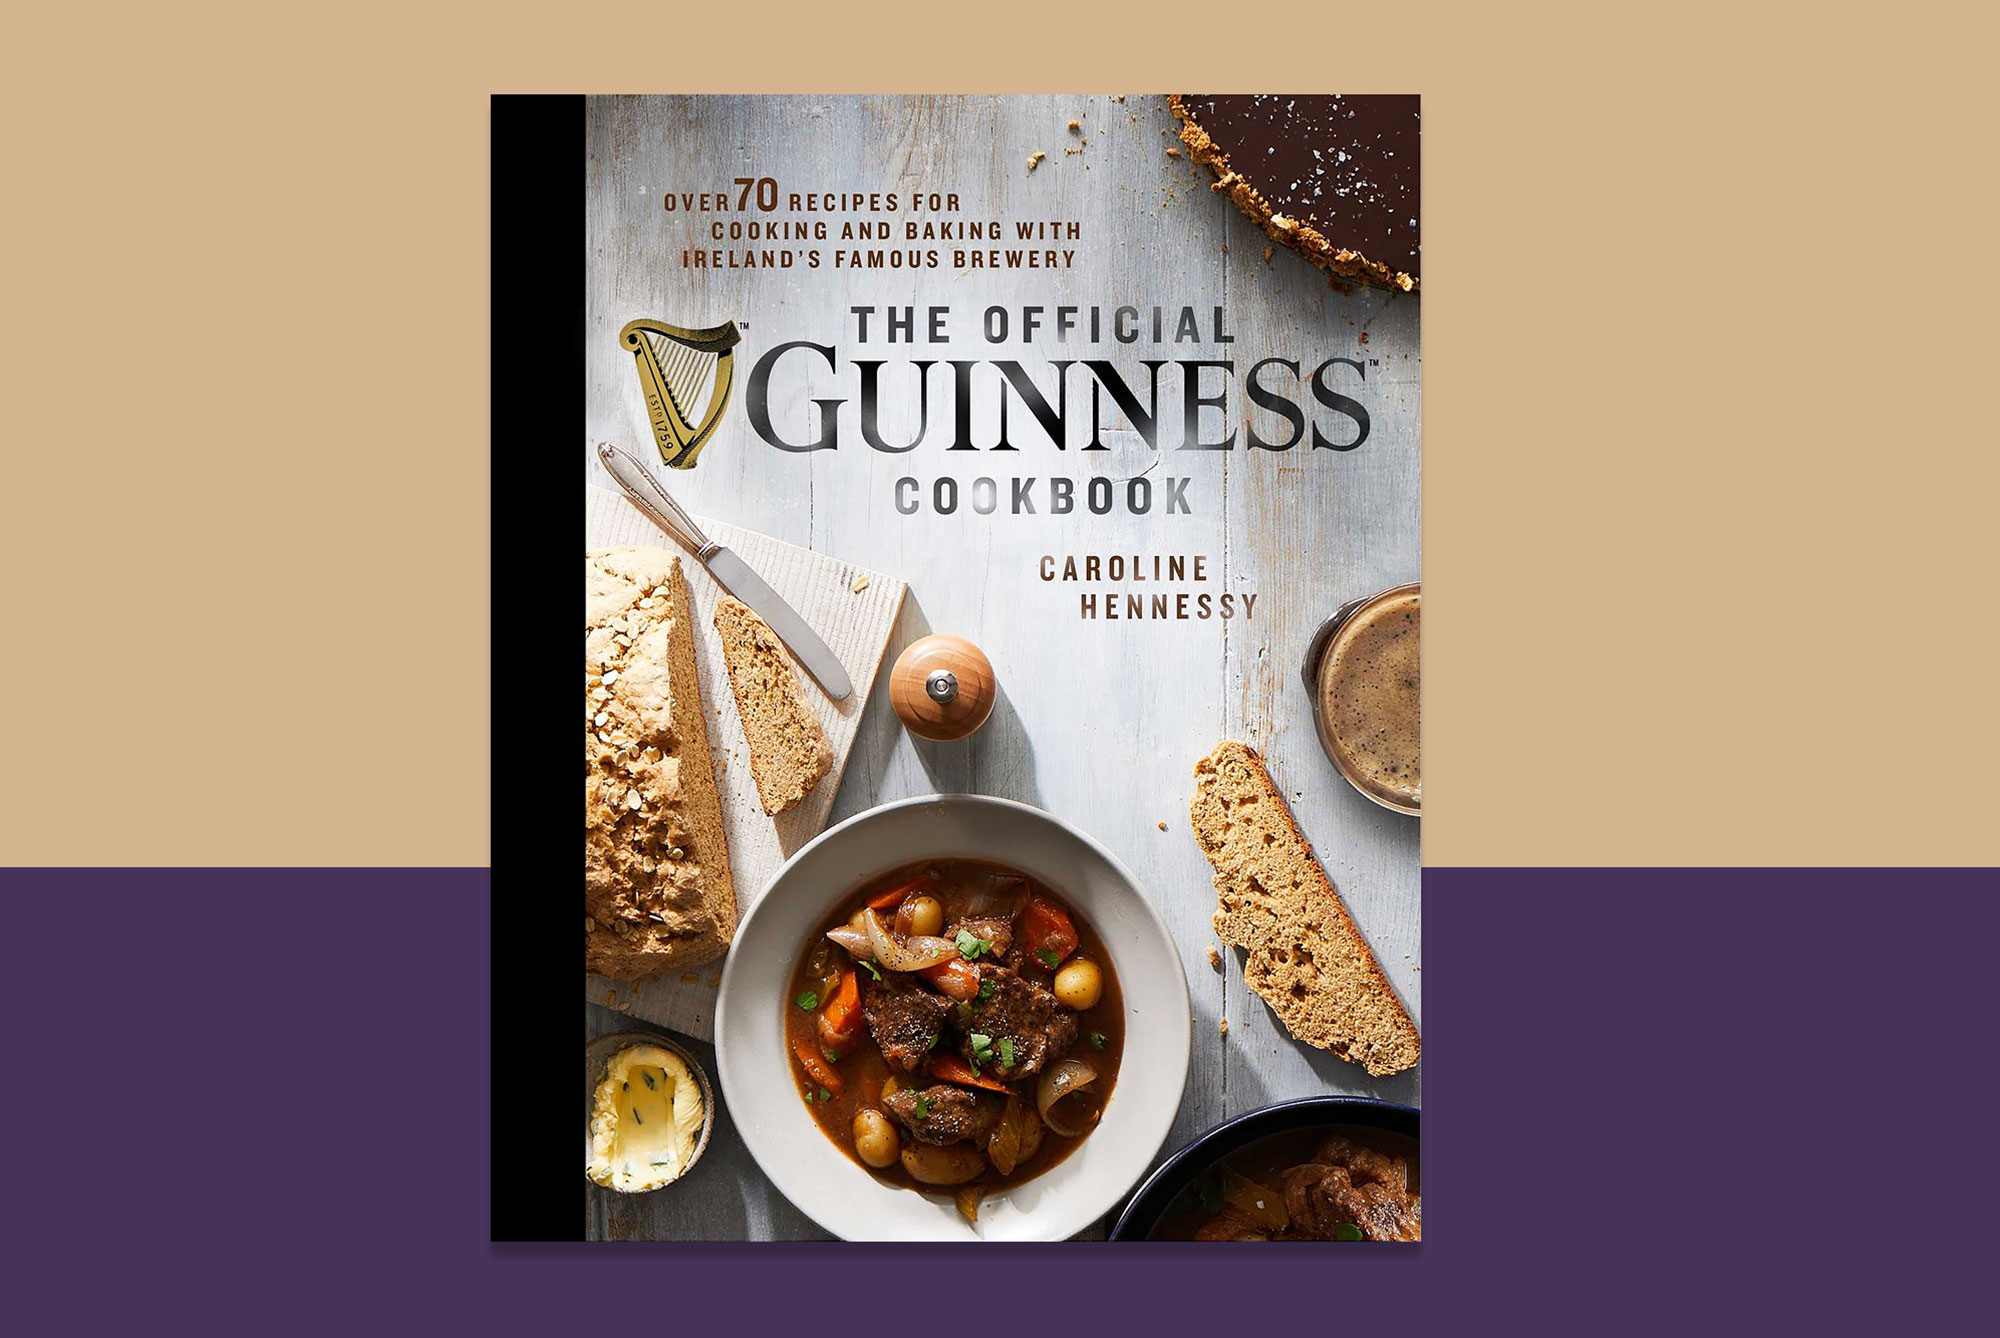 The Official Guiness Cookbook